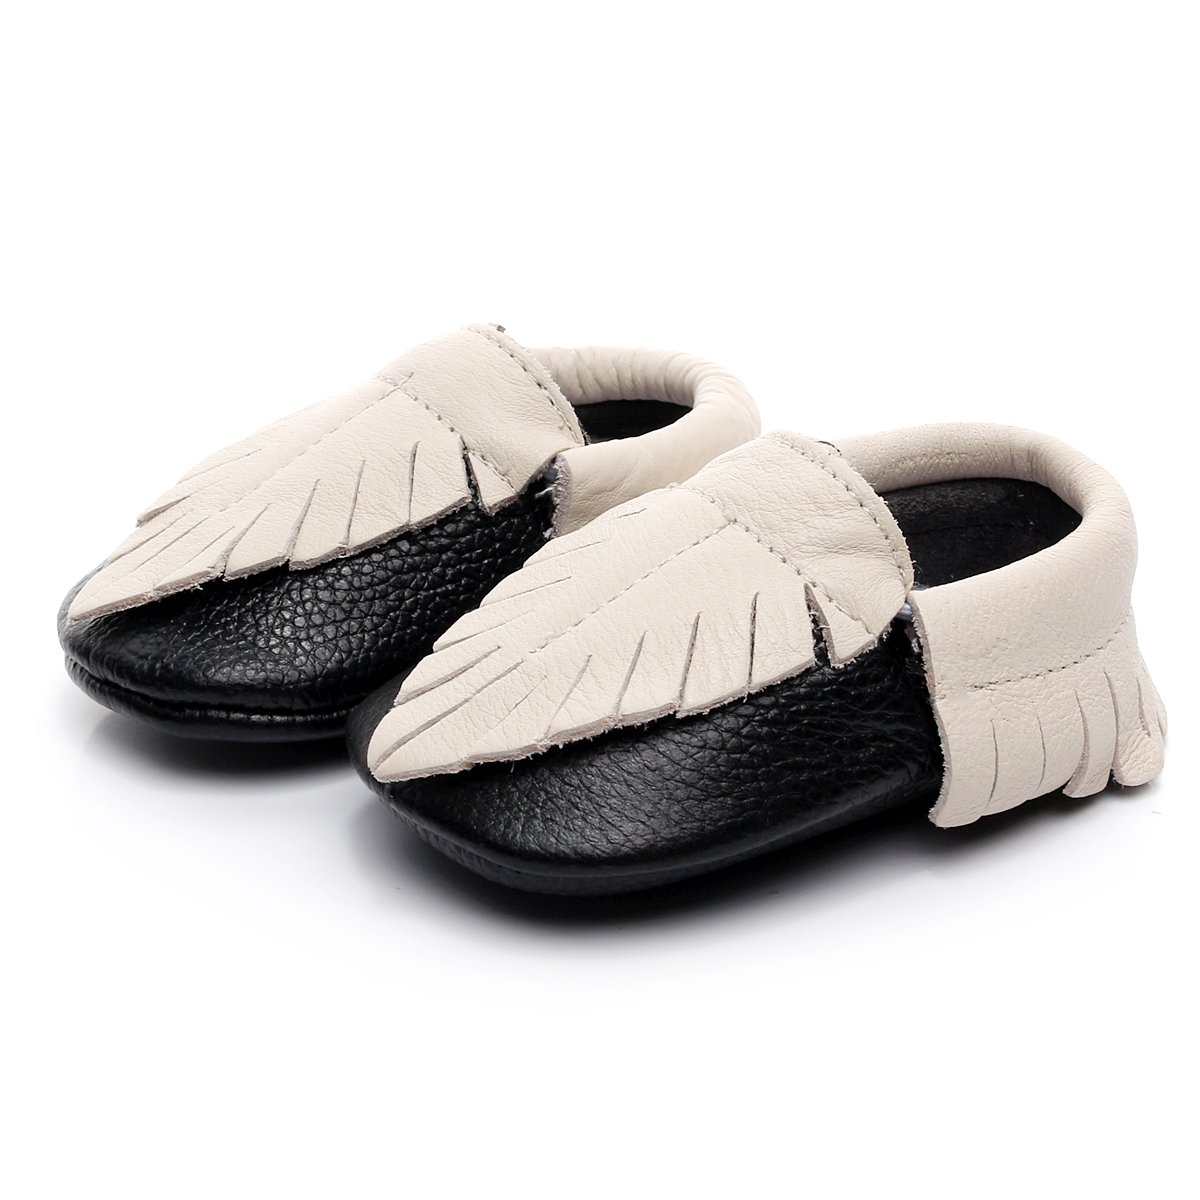 HONGTEYA Leather Baby Moccasins Baby Shoes Girl Soft Soled Anti-Slip Baby Sandals